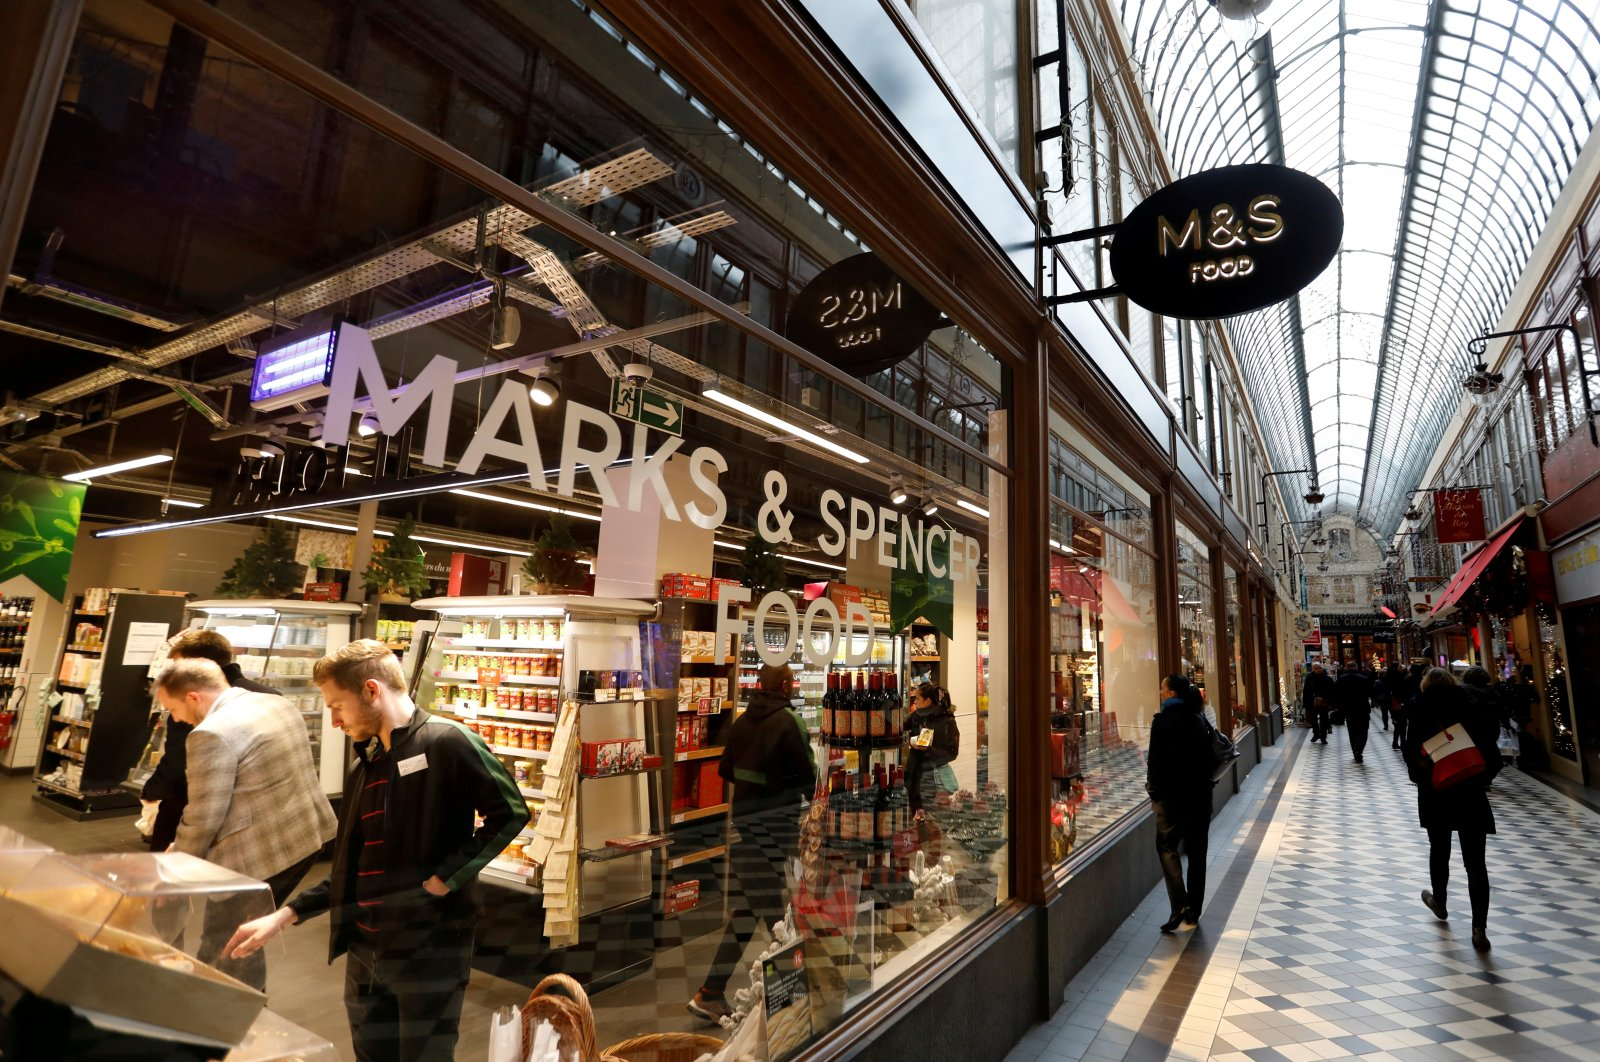 A Marks & Spencer store is seen in the covered Jouffroy passage in Paris, France, Dec. 11, 2018. (Reuters Photo)